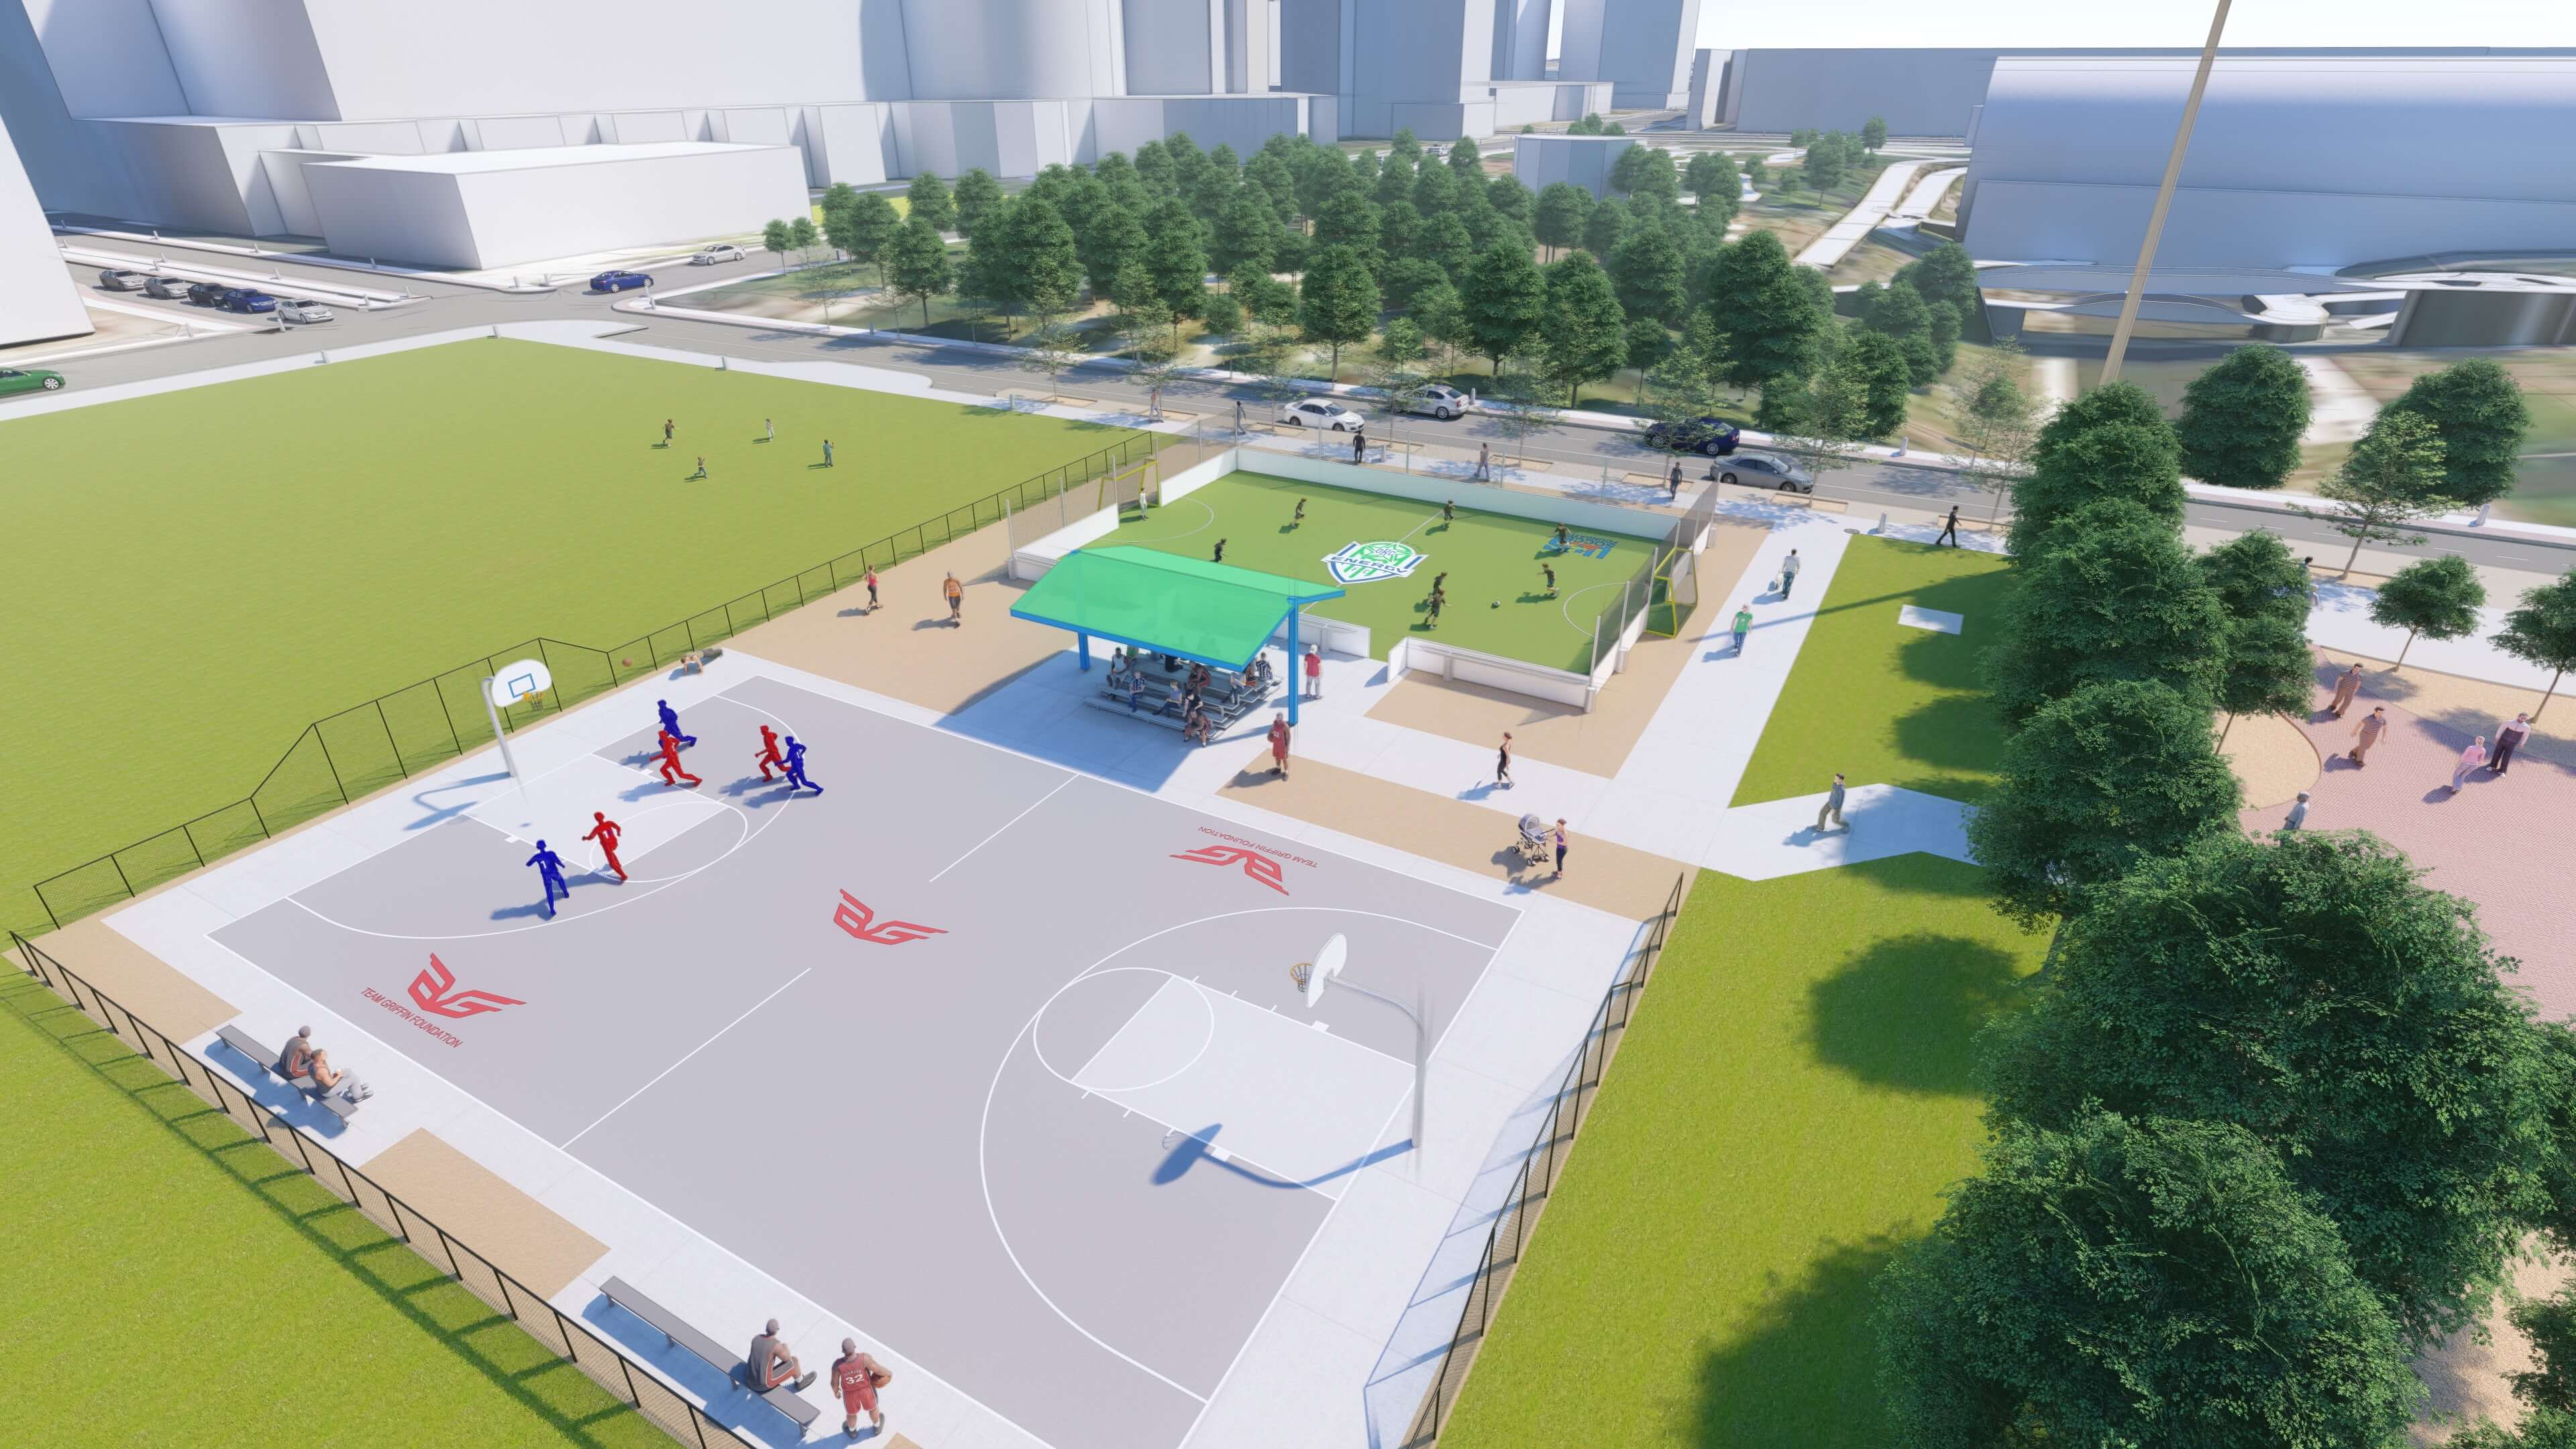 OGE courts rendering 9.20.18